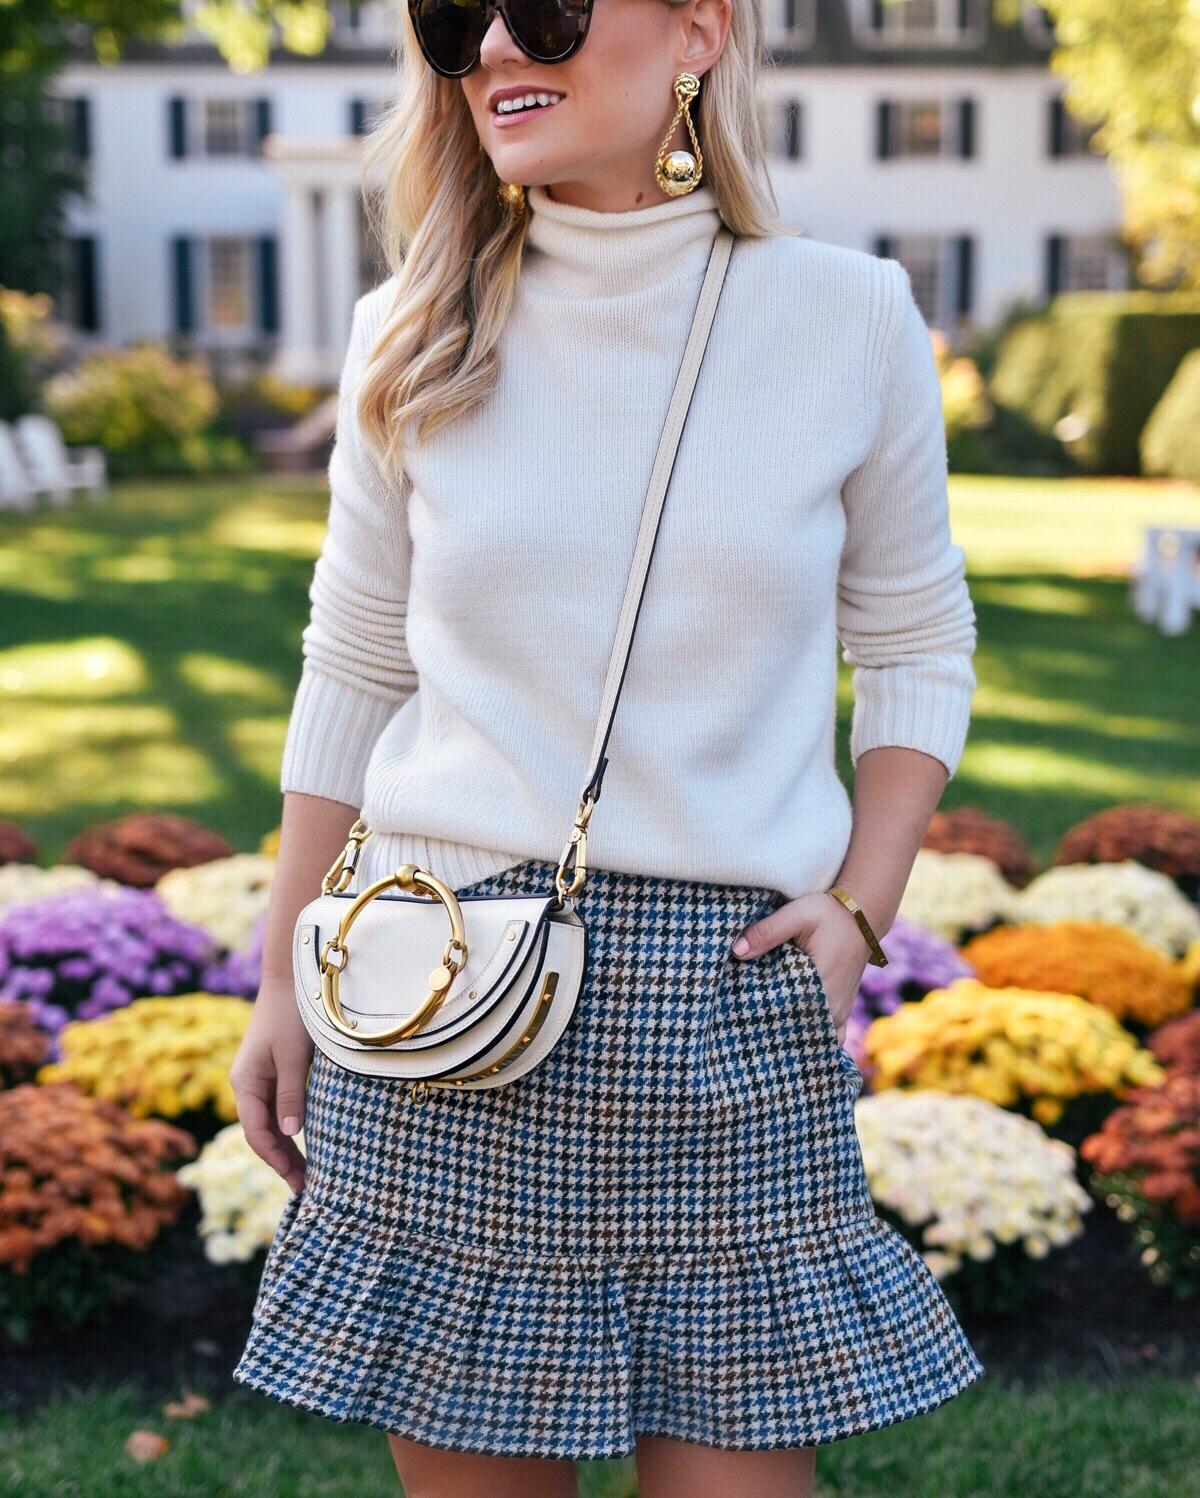 Lo-Murphy-Fall-outfit-mini-skirt-fall-look-ootd-dallas-blogger-plaid-mini-skirt